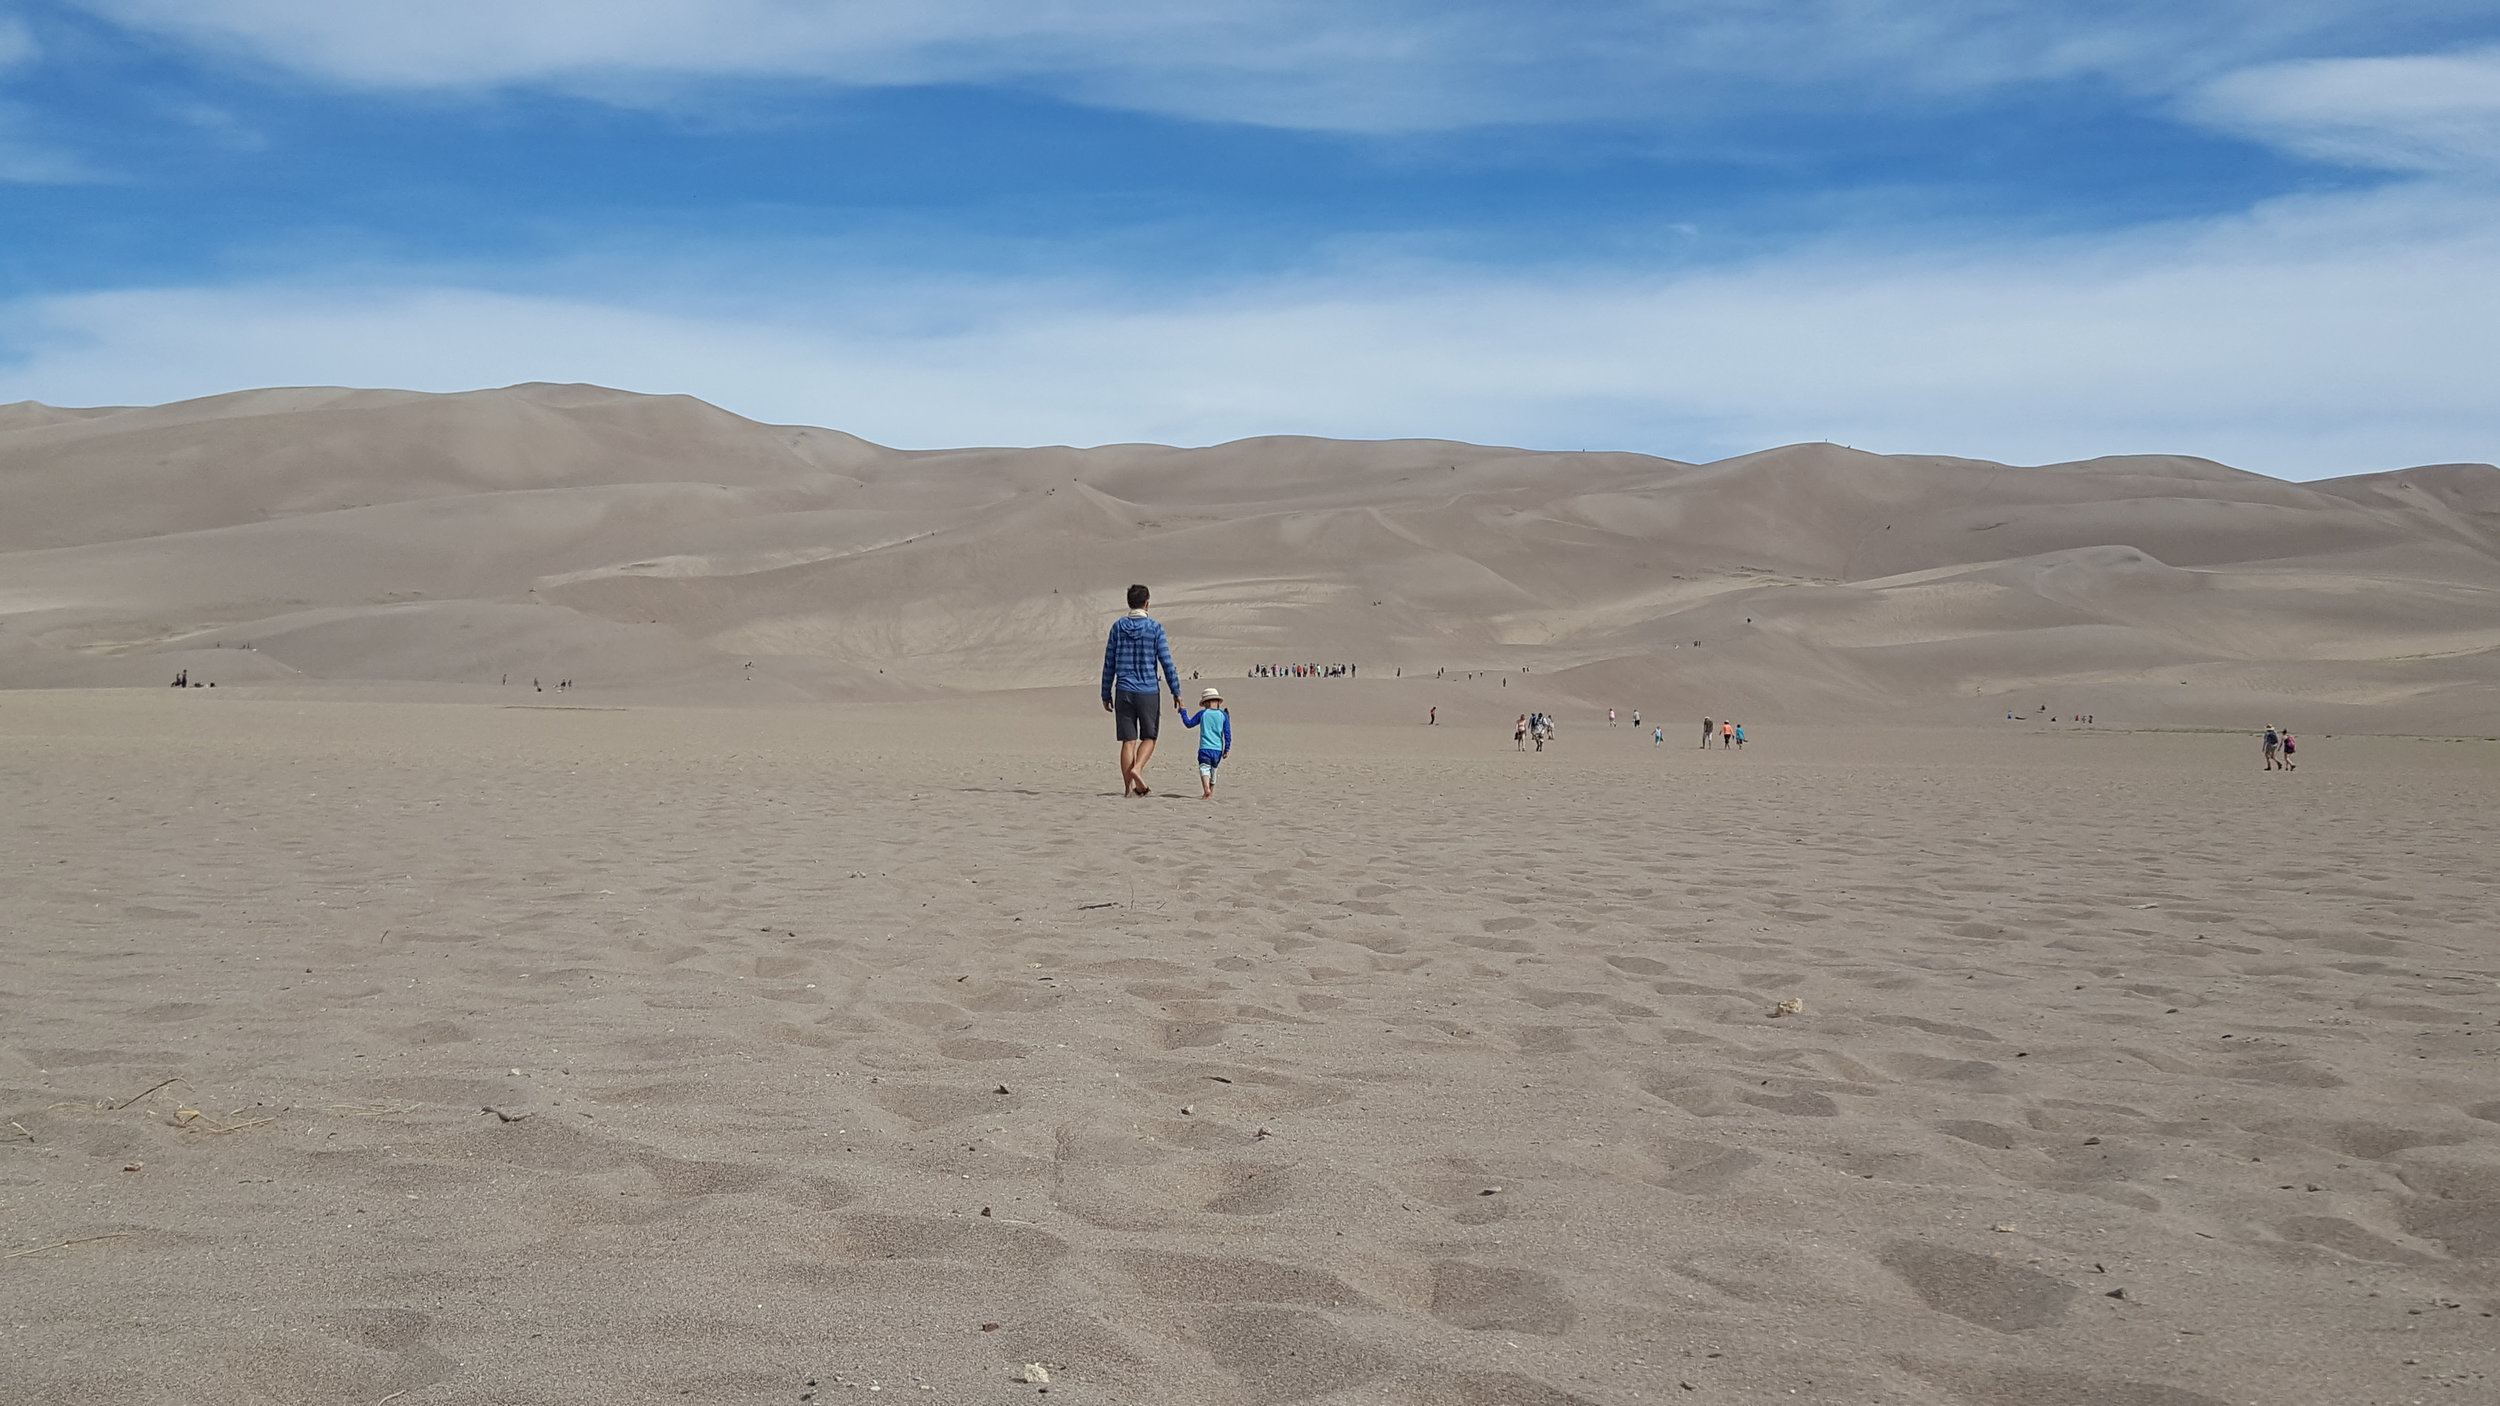 Heading to scope out the dunes - Great Sand Dunes National Park